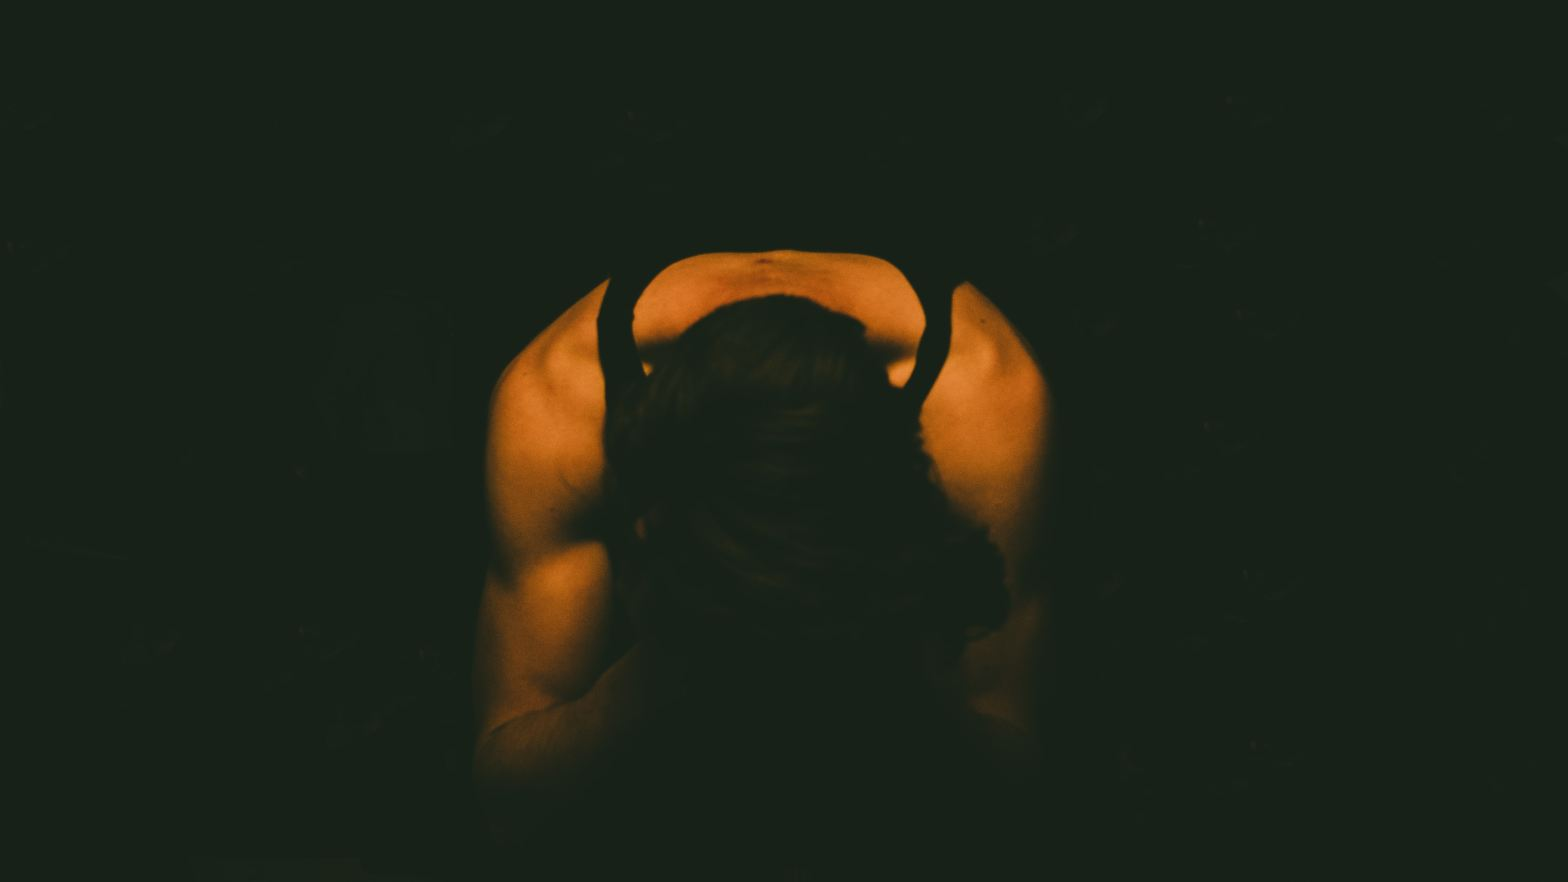 A woman crouching on the ground in the dark